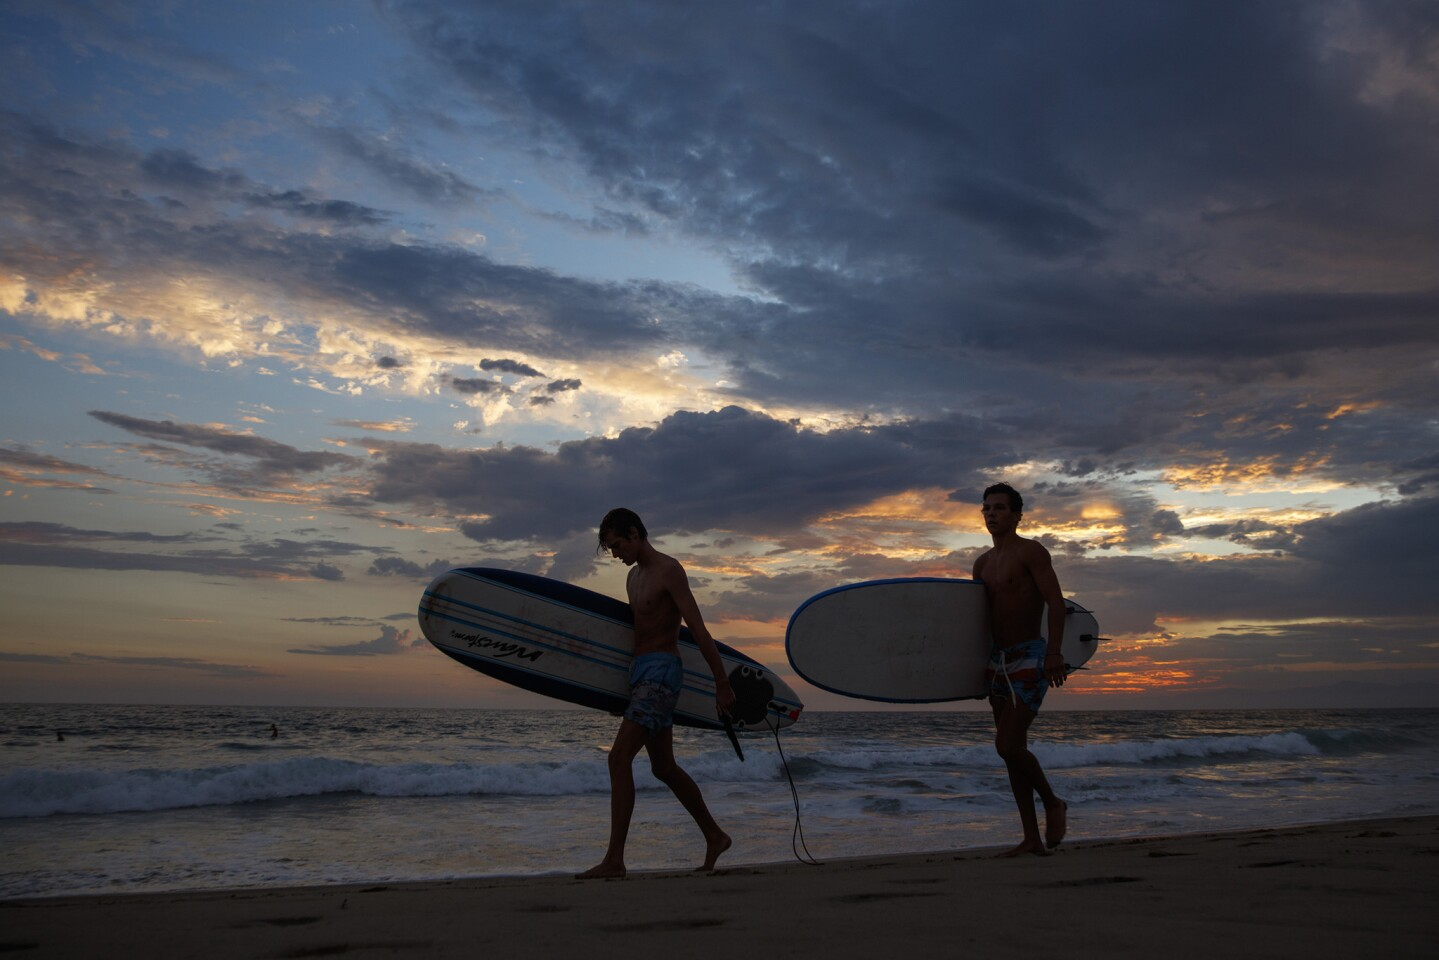 Brady Webush, left, and Johnny Byrne, both from Manhattan Beach, end their day in the El Porto area of Manhattan Beach. Weather in Los Angeles brought morning showers to the beaches and thunderstorms to other parts of L.A. County.